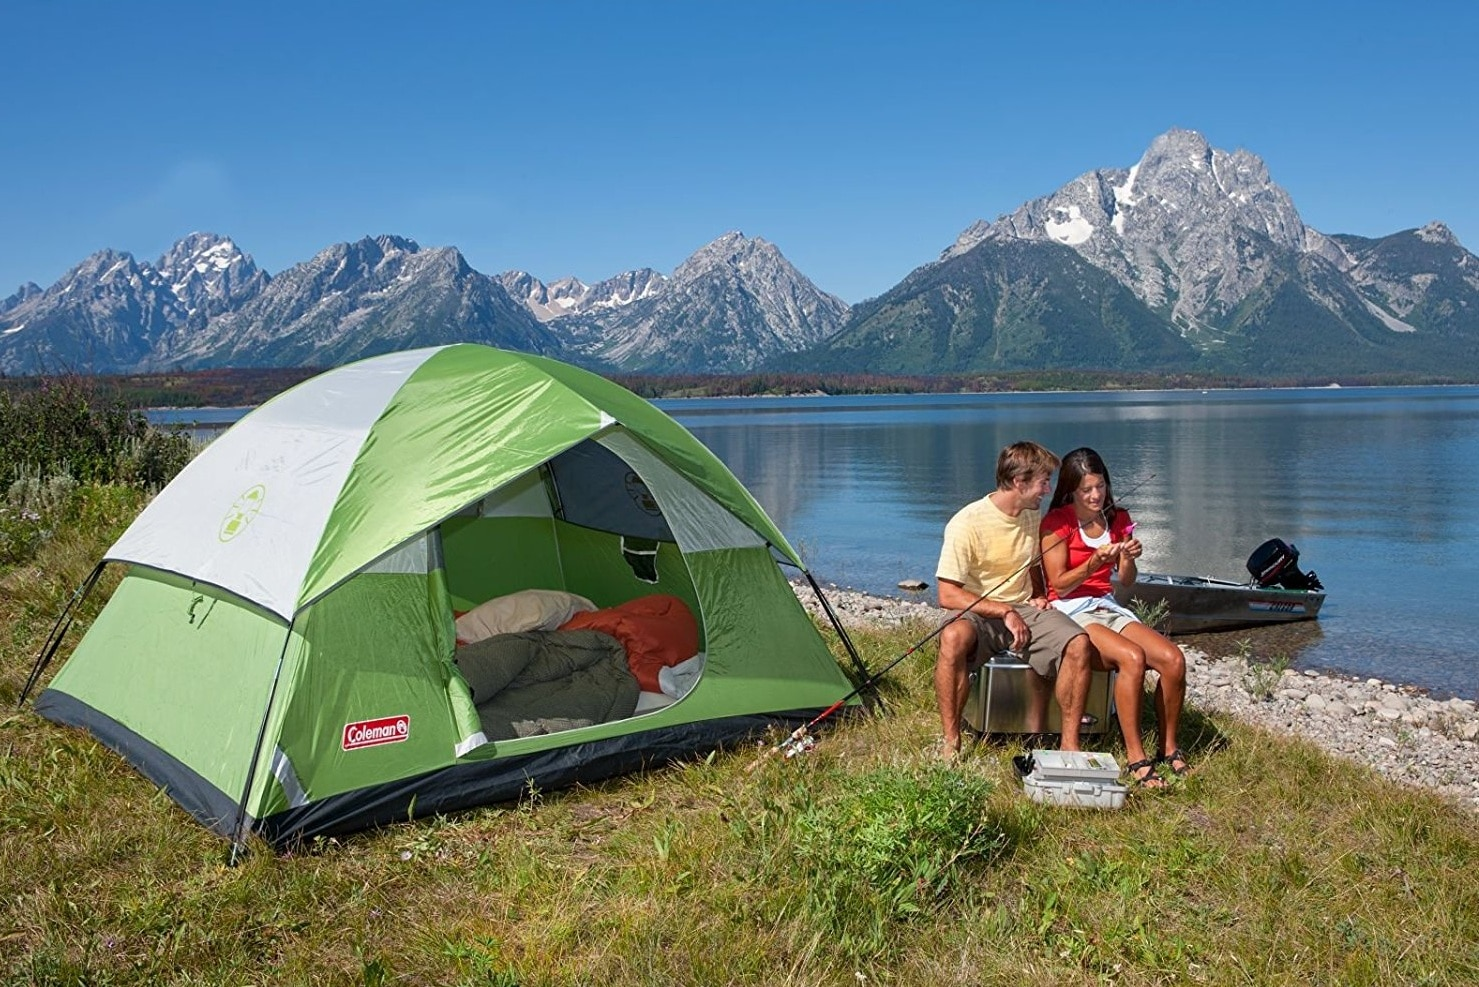 The 10 Best Cheap C&ing Tents in 2019 u2013 Review with Buying Guide & The 10 Best Cheap Camping Tents in 2019 - Review with Buying Guide